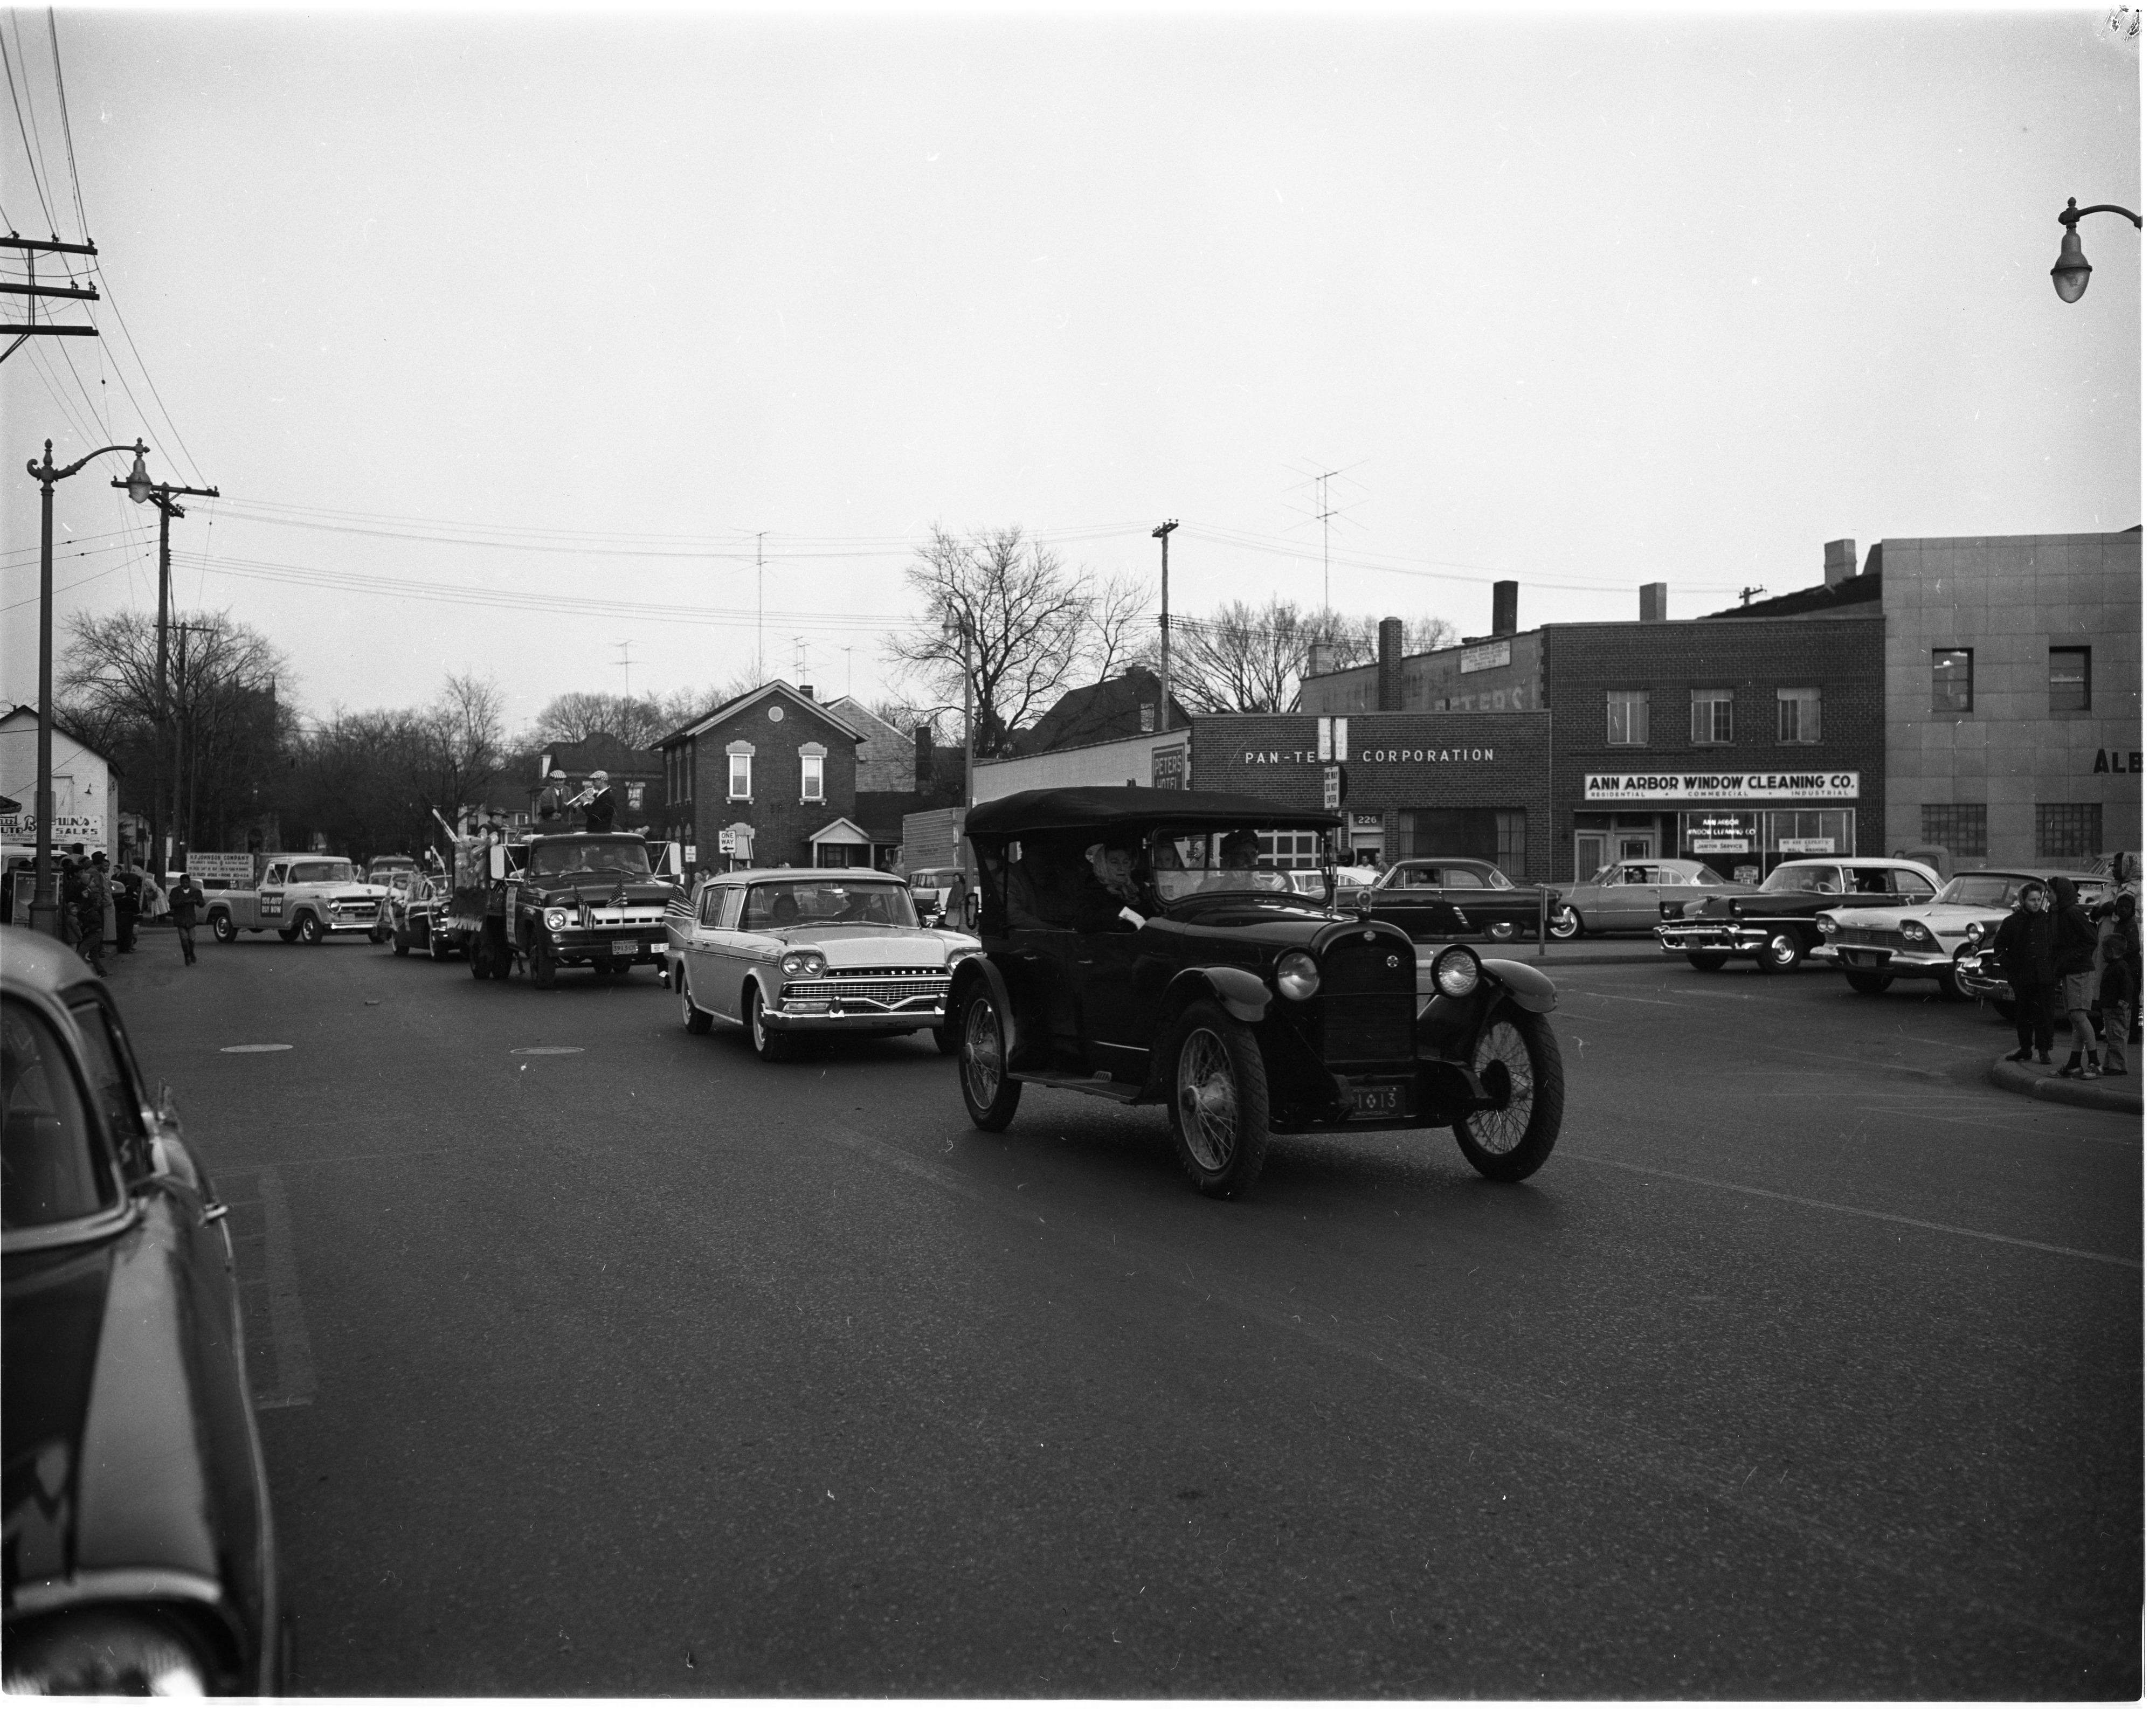 'Auto Buy Now Parade' Goes Through Ann Arbor, April 1958 image